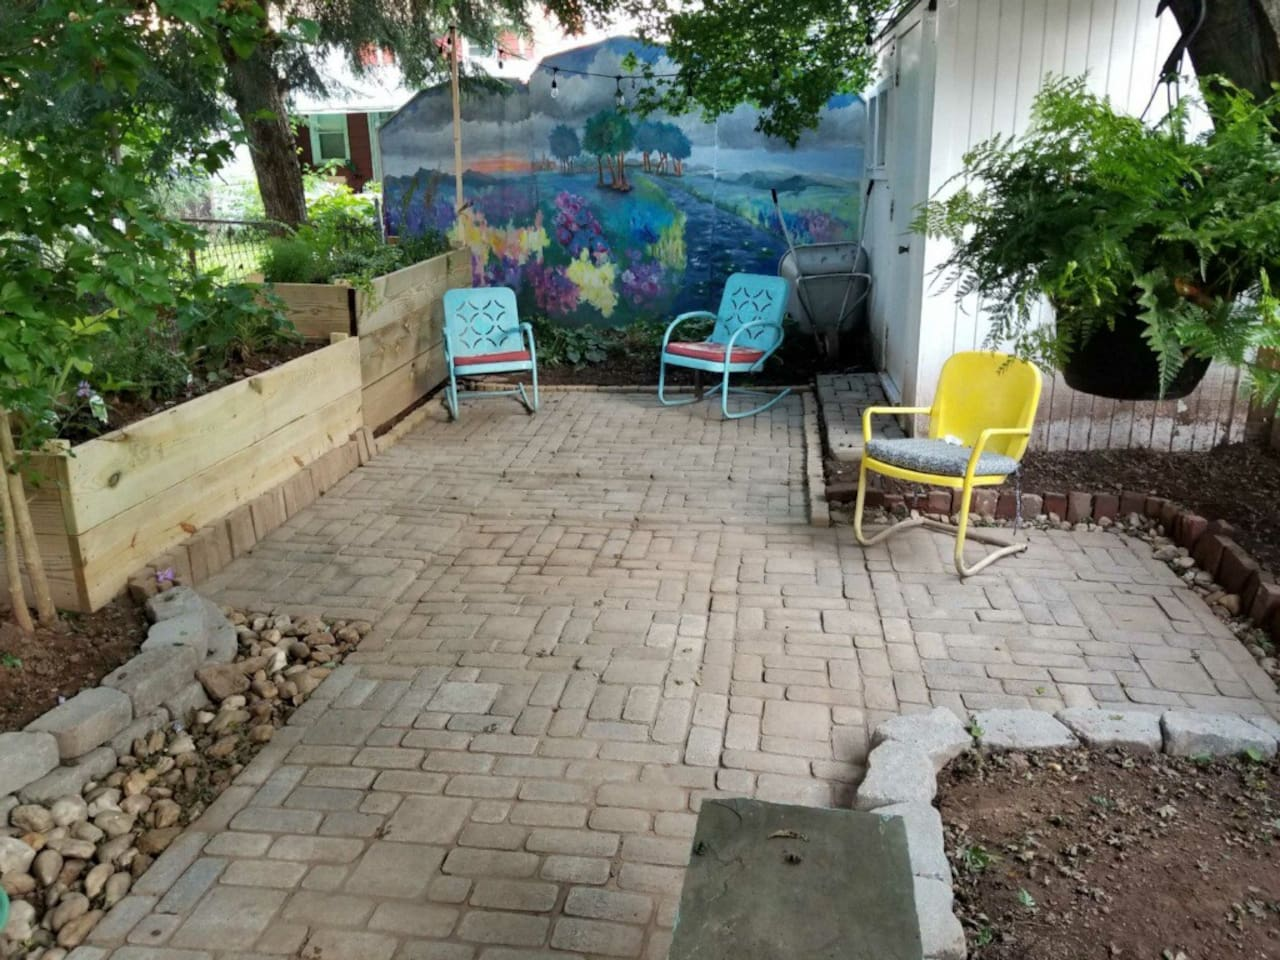 Sit and enjoy the great outdoors and a wall mural from a Phoenixville resident